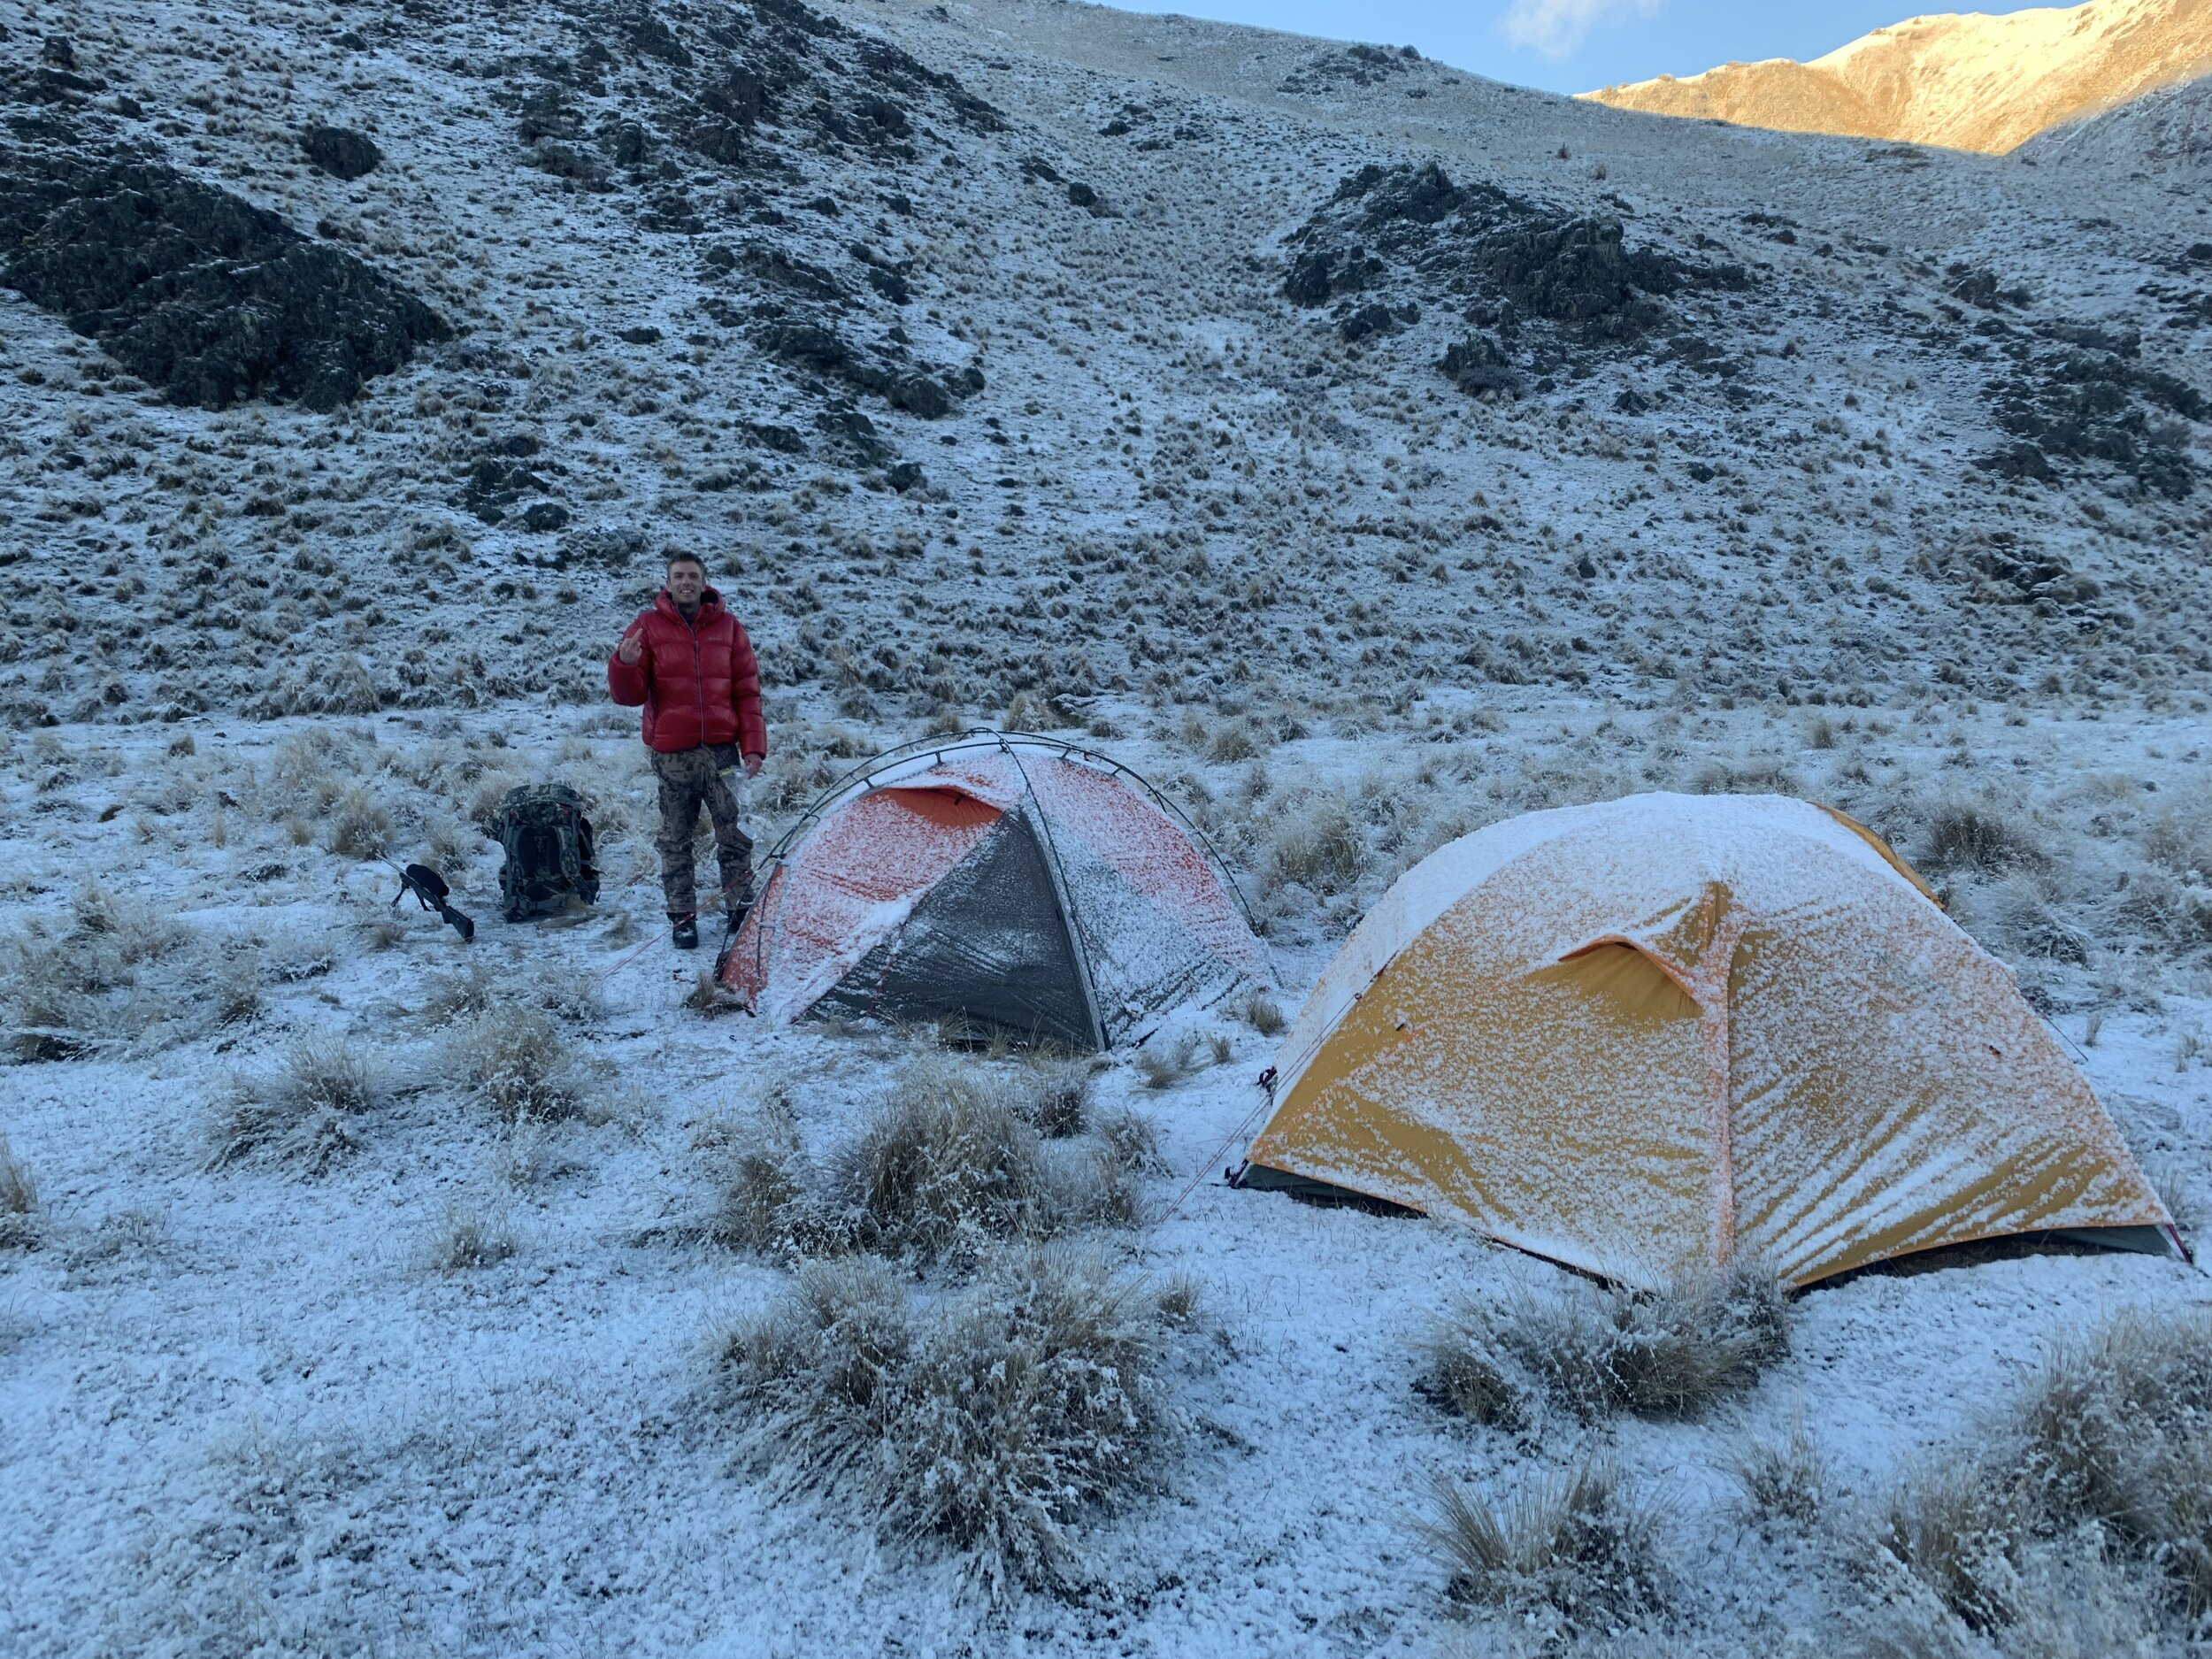 frosty camnp in the new zealand mountains